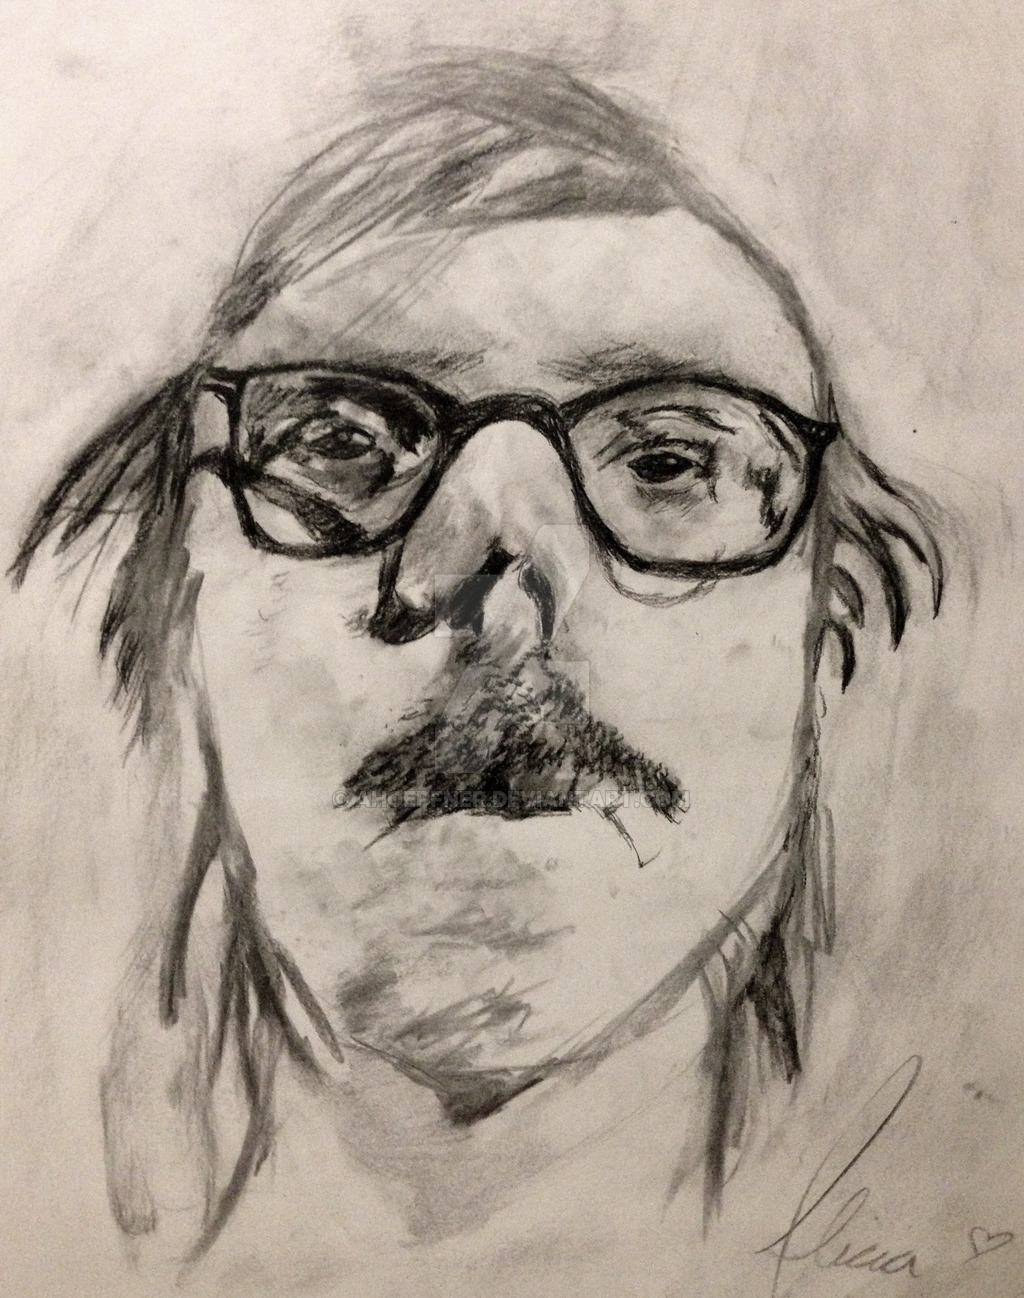 Drawn portrait famous artist On by (charcoal) based